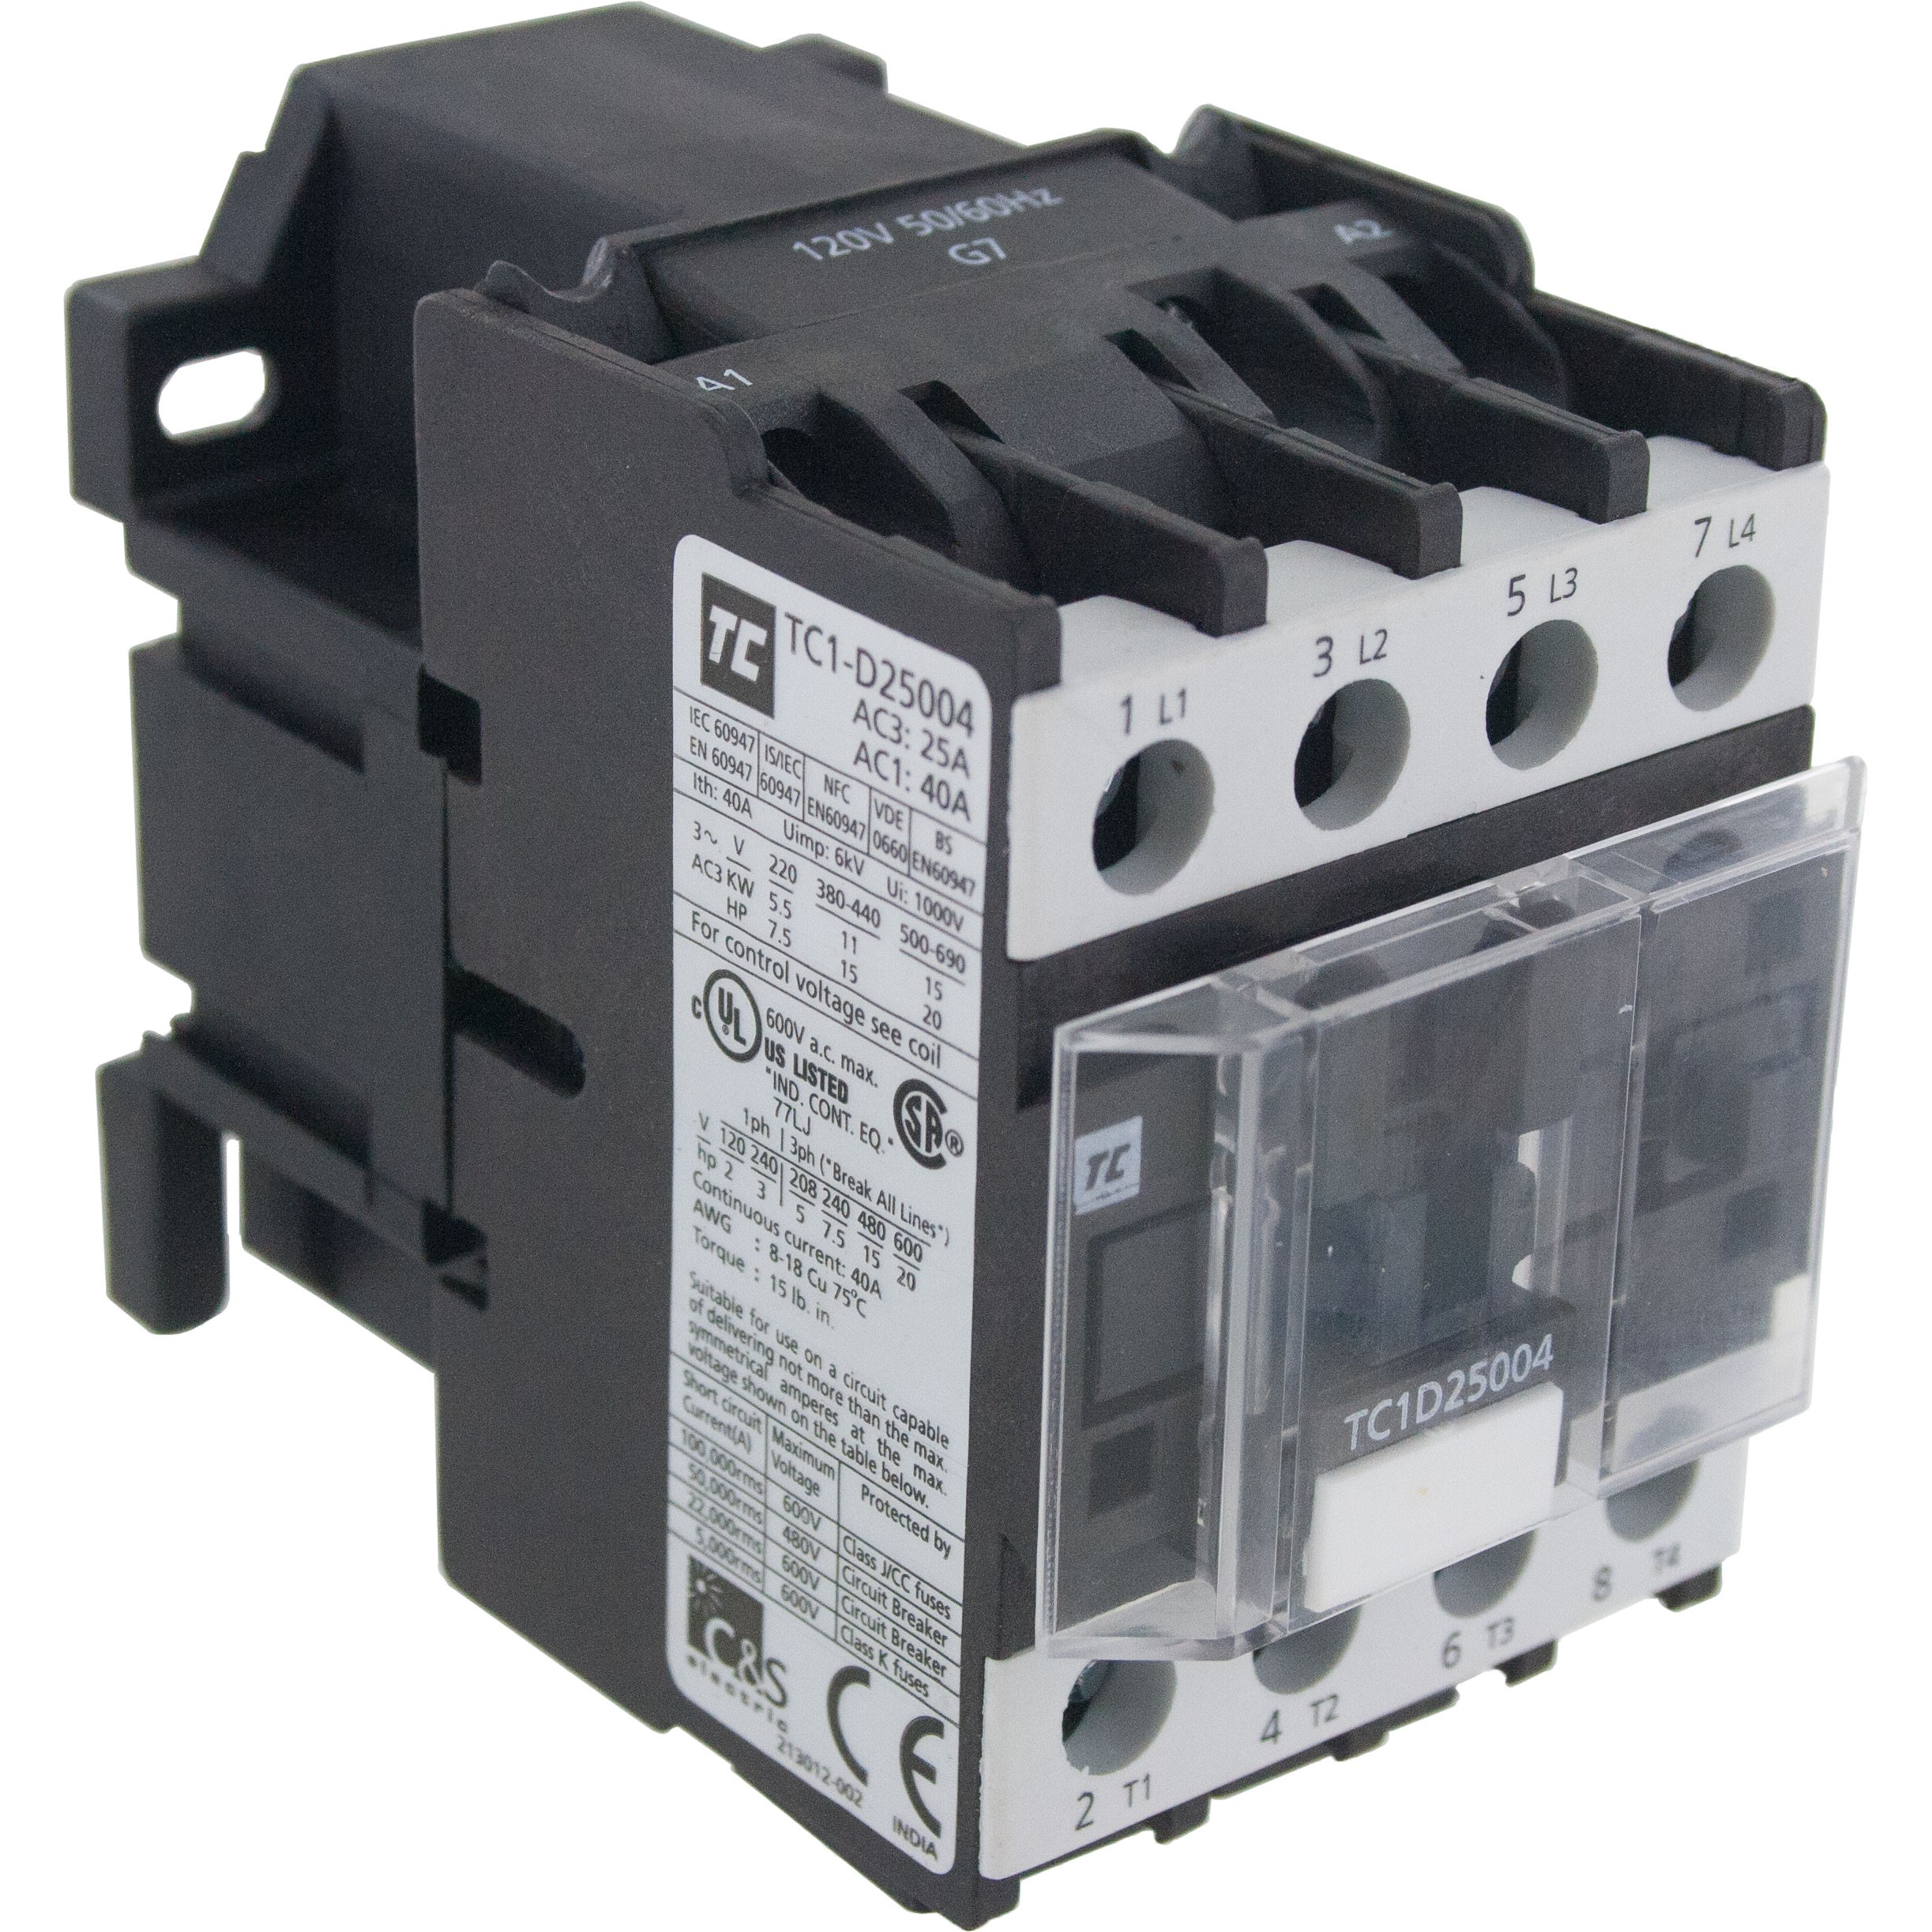 4 Pole Contactor 25 Amp 2 N/O - 2 N/C 120 Volt AC Coil | ElecDirect